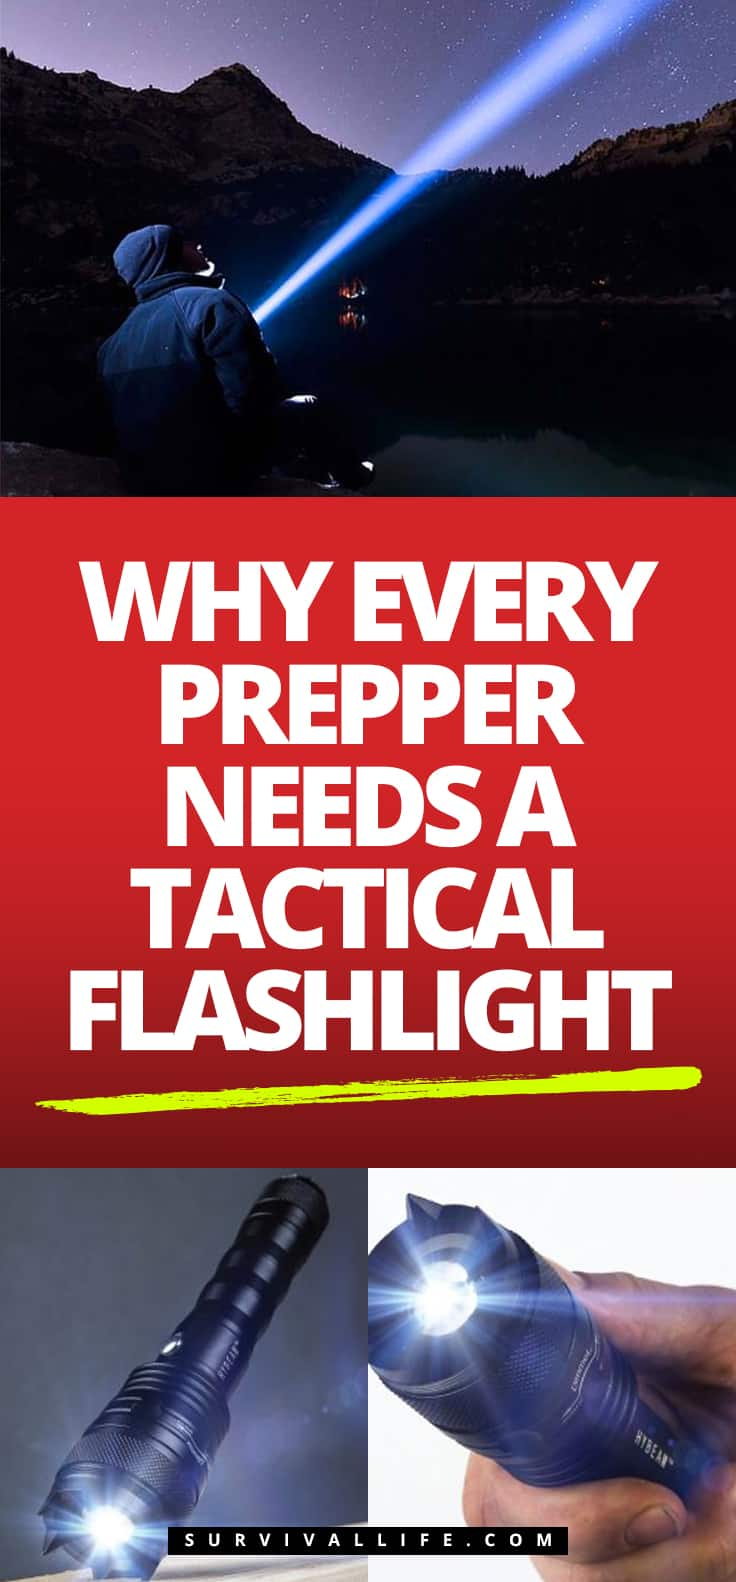 Check out Why Every Prepper Needs A Tactical Flashlight at https://survivallife.com/why-every-prepper-needs-tactical-flashlight/